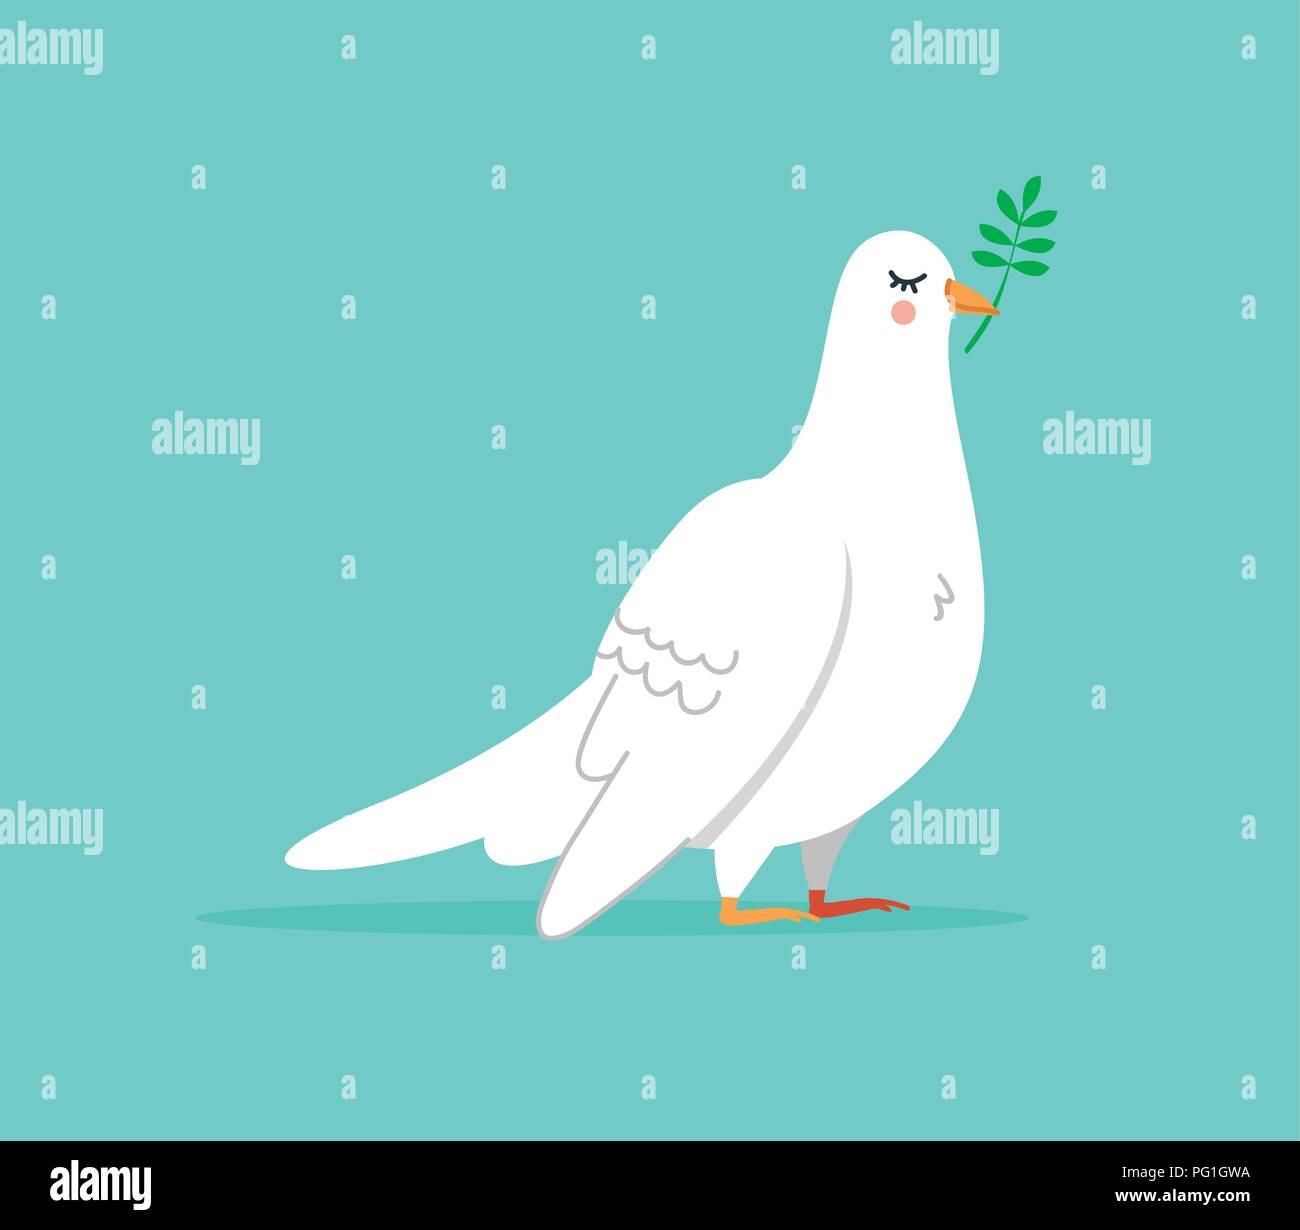 Isolated white dove illustration, cute bird animal in hand drawn style for peace and happiness. EPS10 vector. - Stock Image